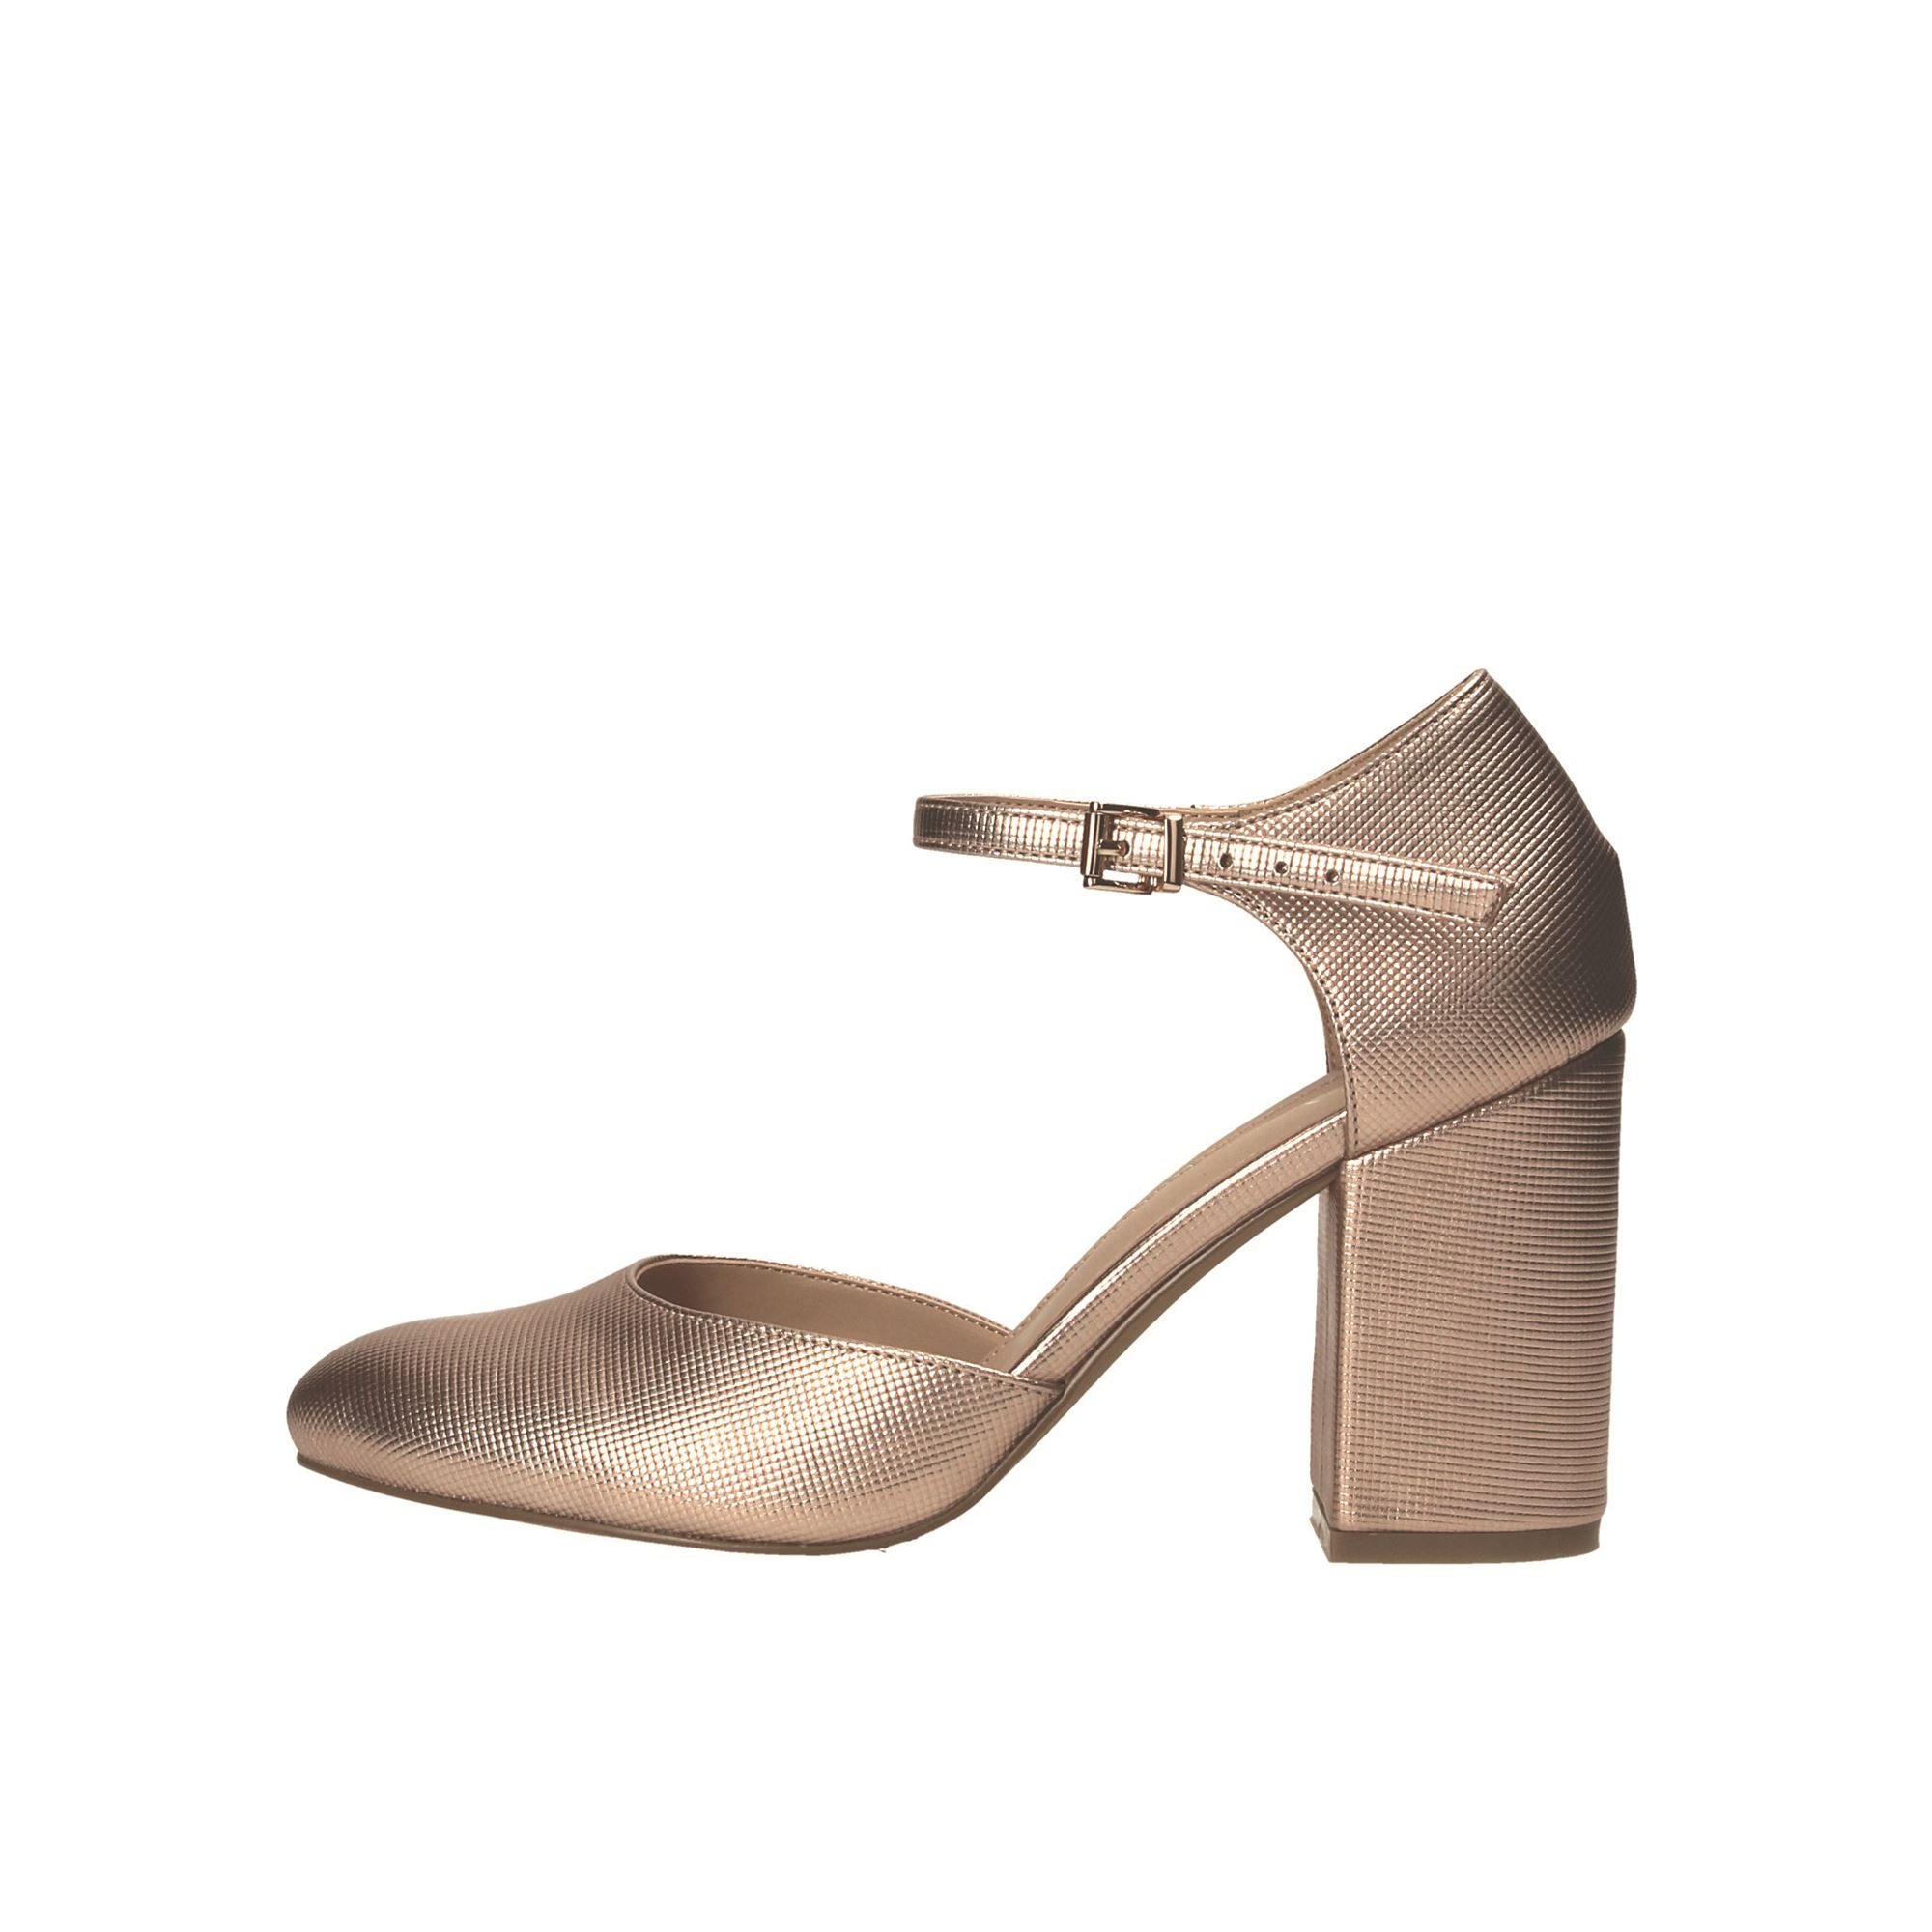 Tata Italia Shoes Woman Décolleté Rose/gold 9498A-1